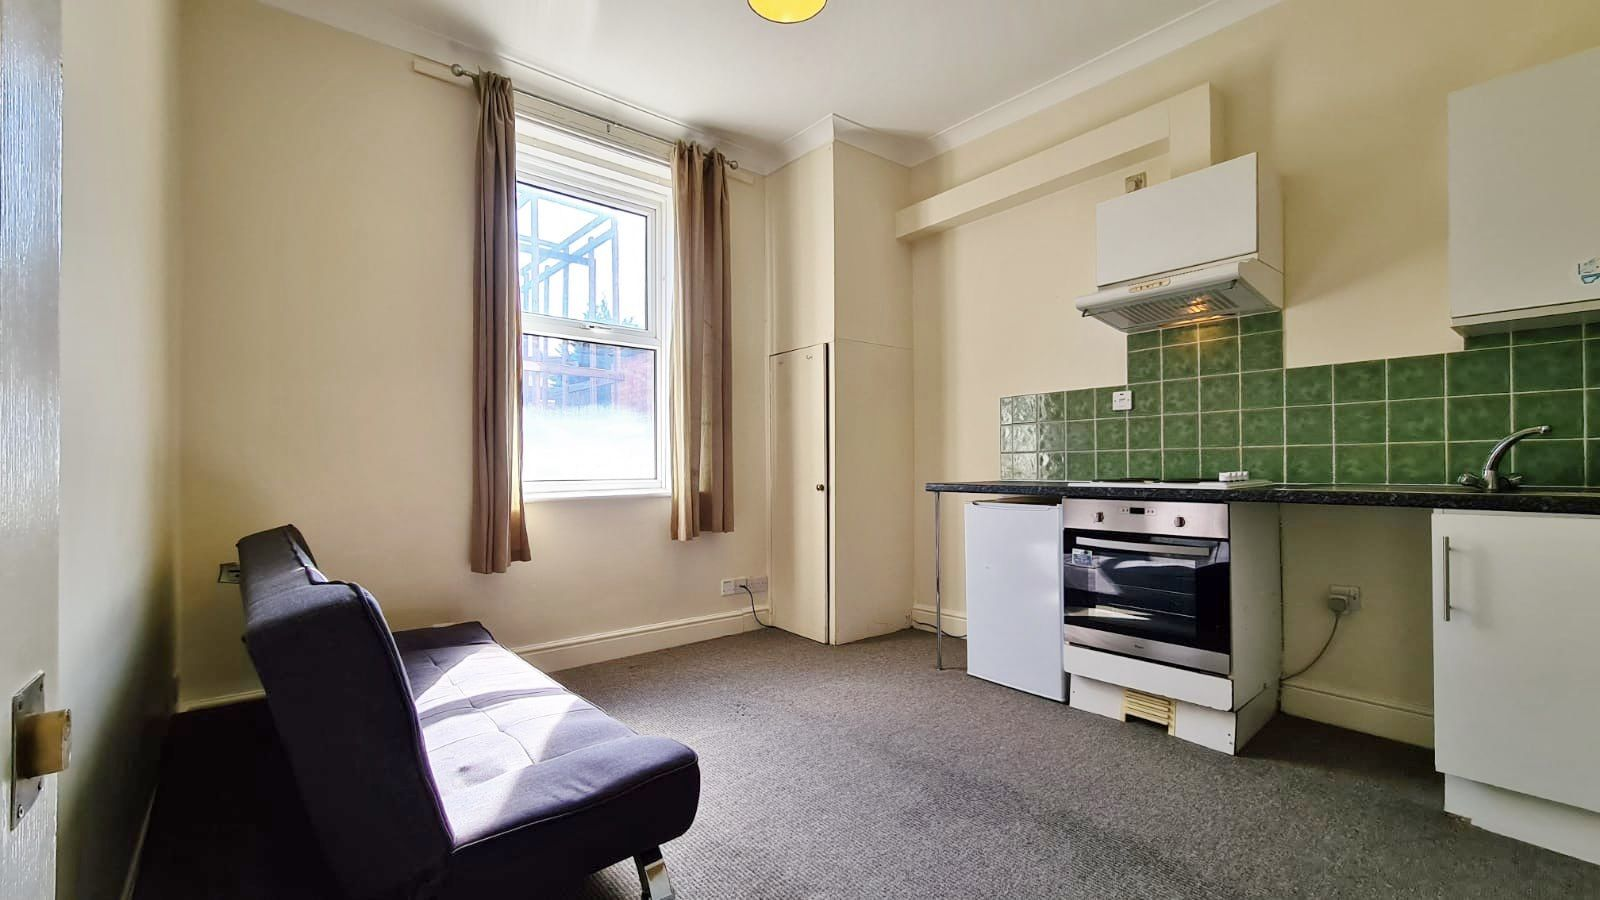 1 bedroom studio flat/apartment To Let in London - Main Studio